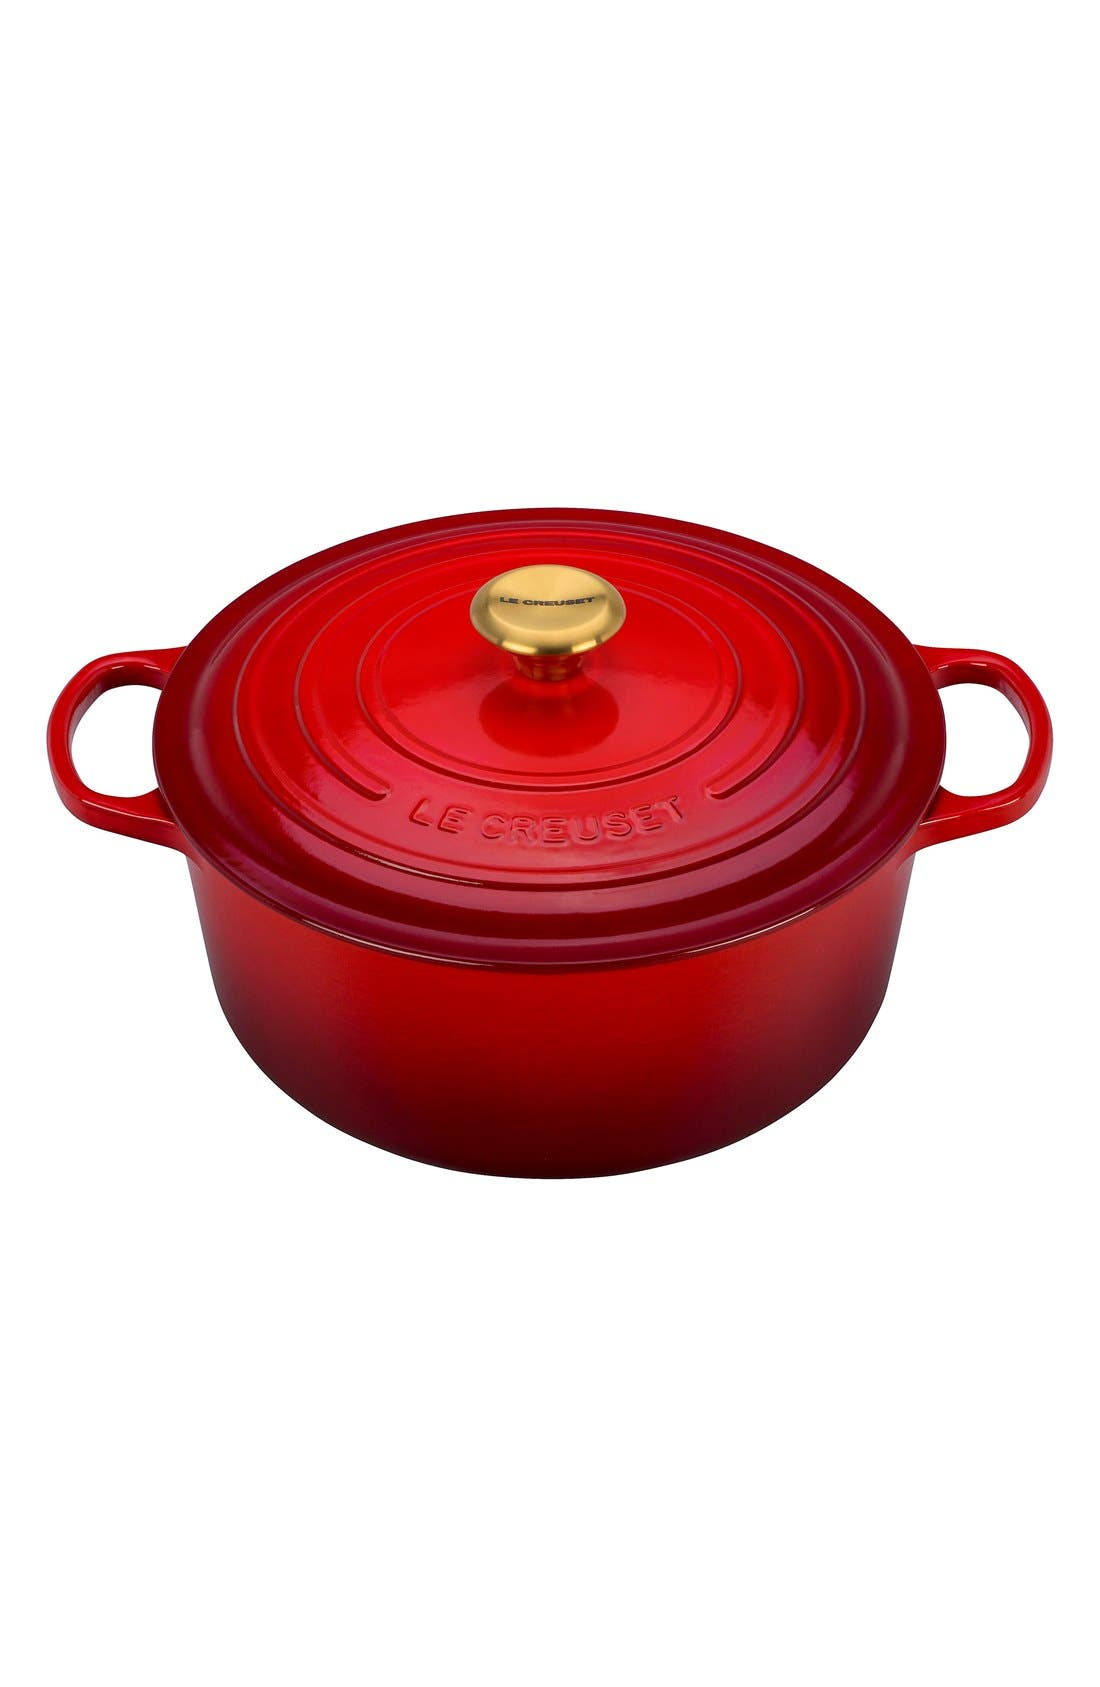 Main Image - Le Creuset Gold Knob Collection 7 1/2 Quart Round French/Dutch Oven